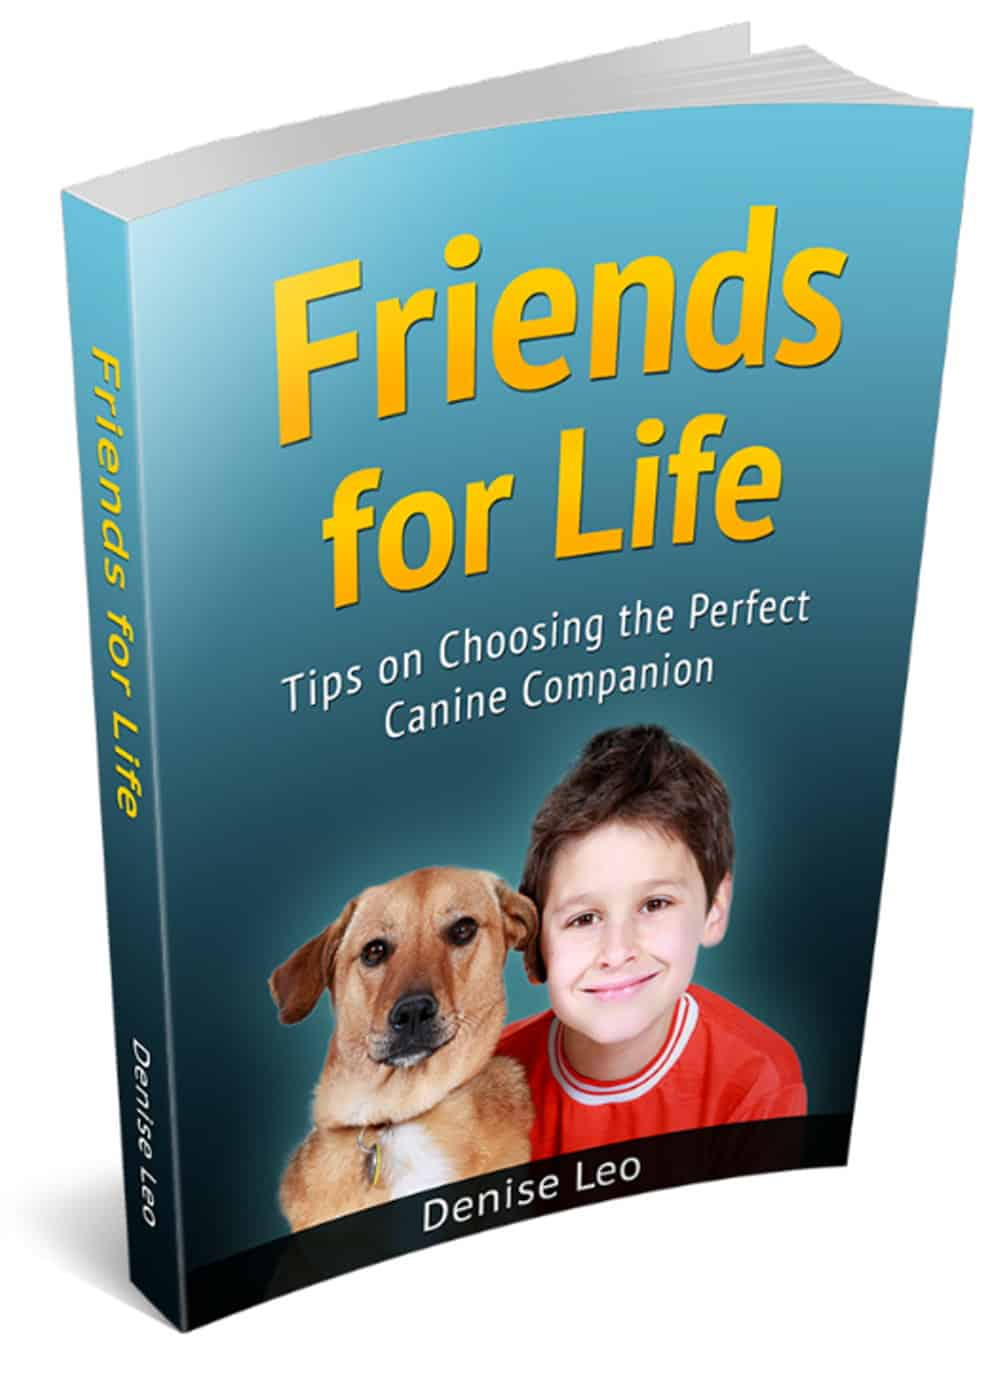 friends for life book: Tips on Choosing the Perfect Canine Companion